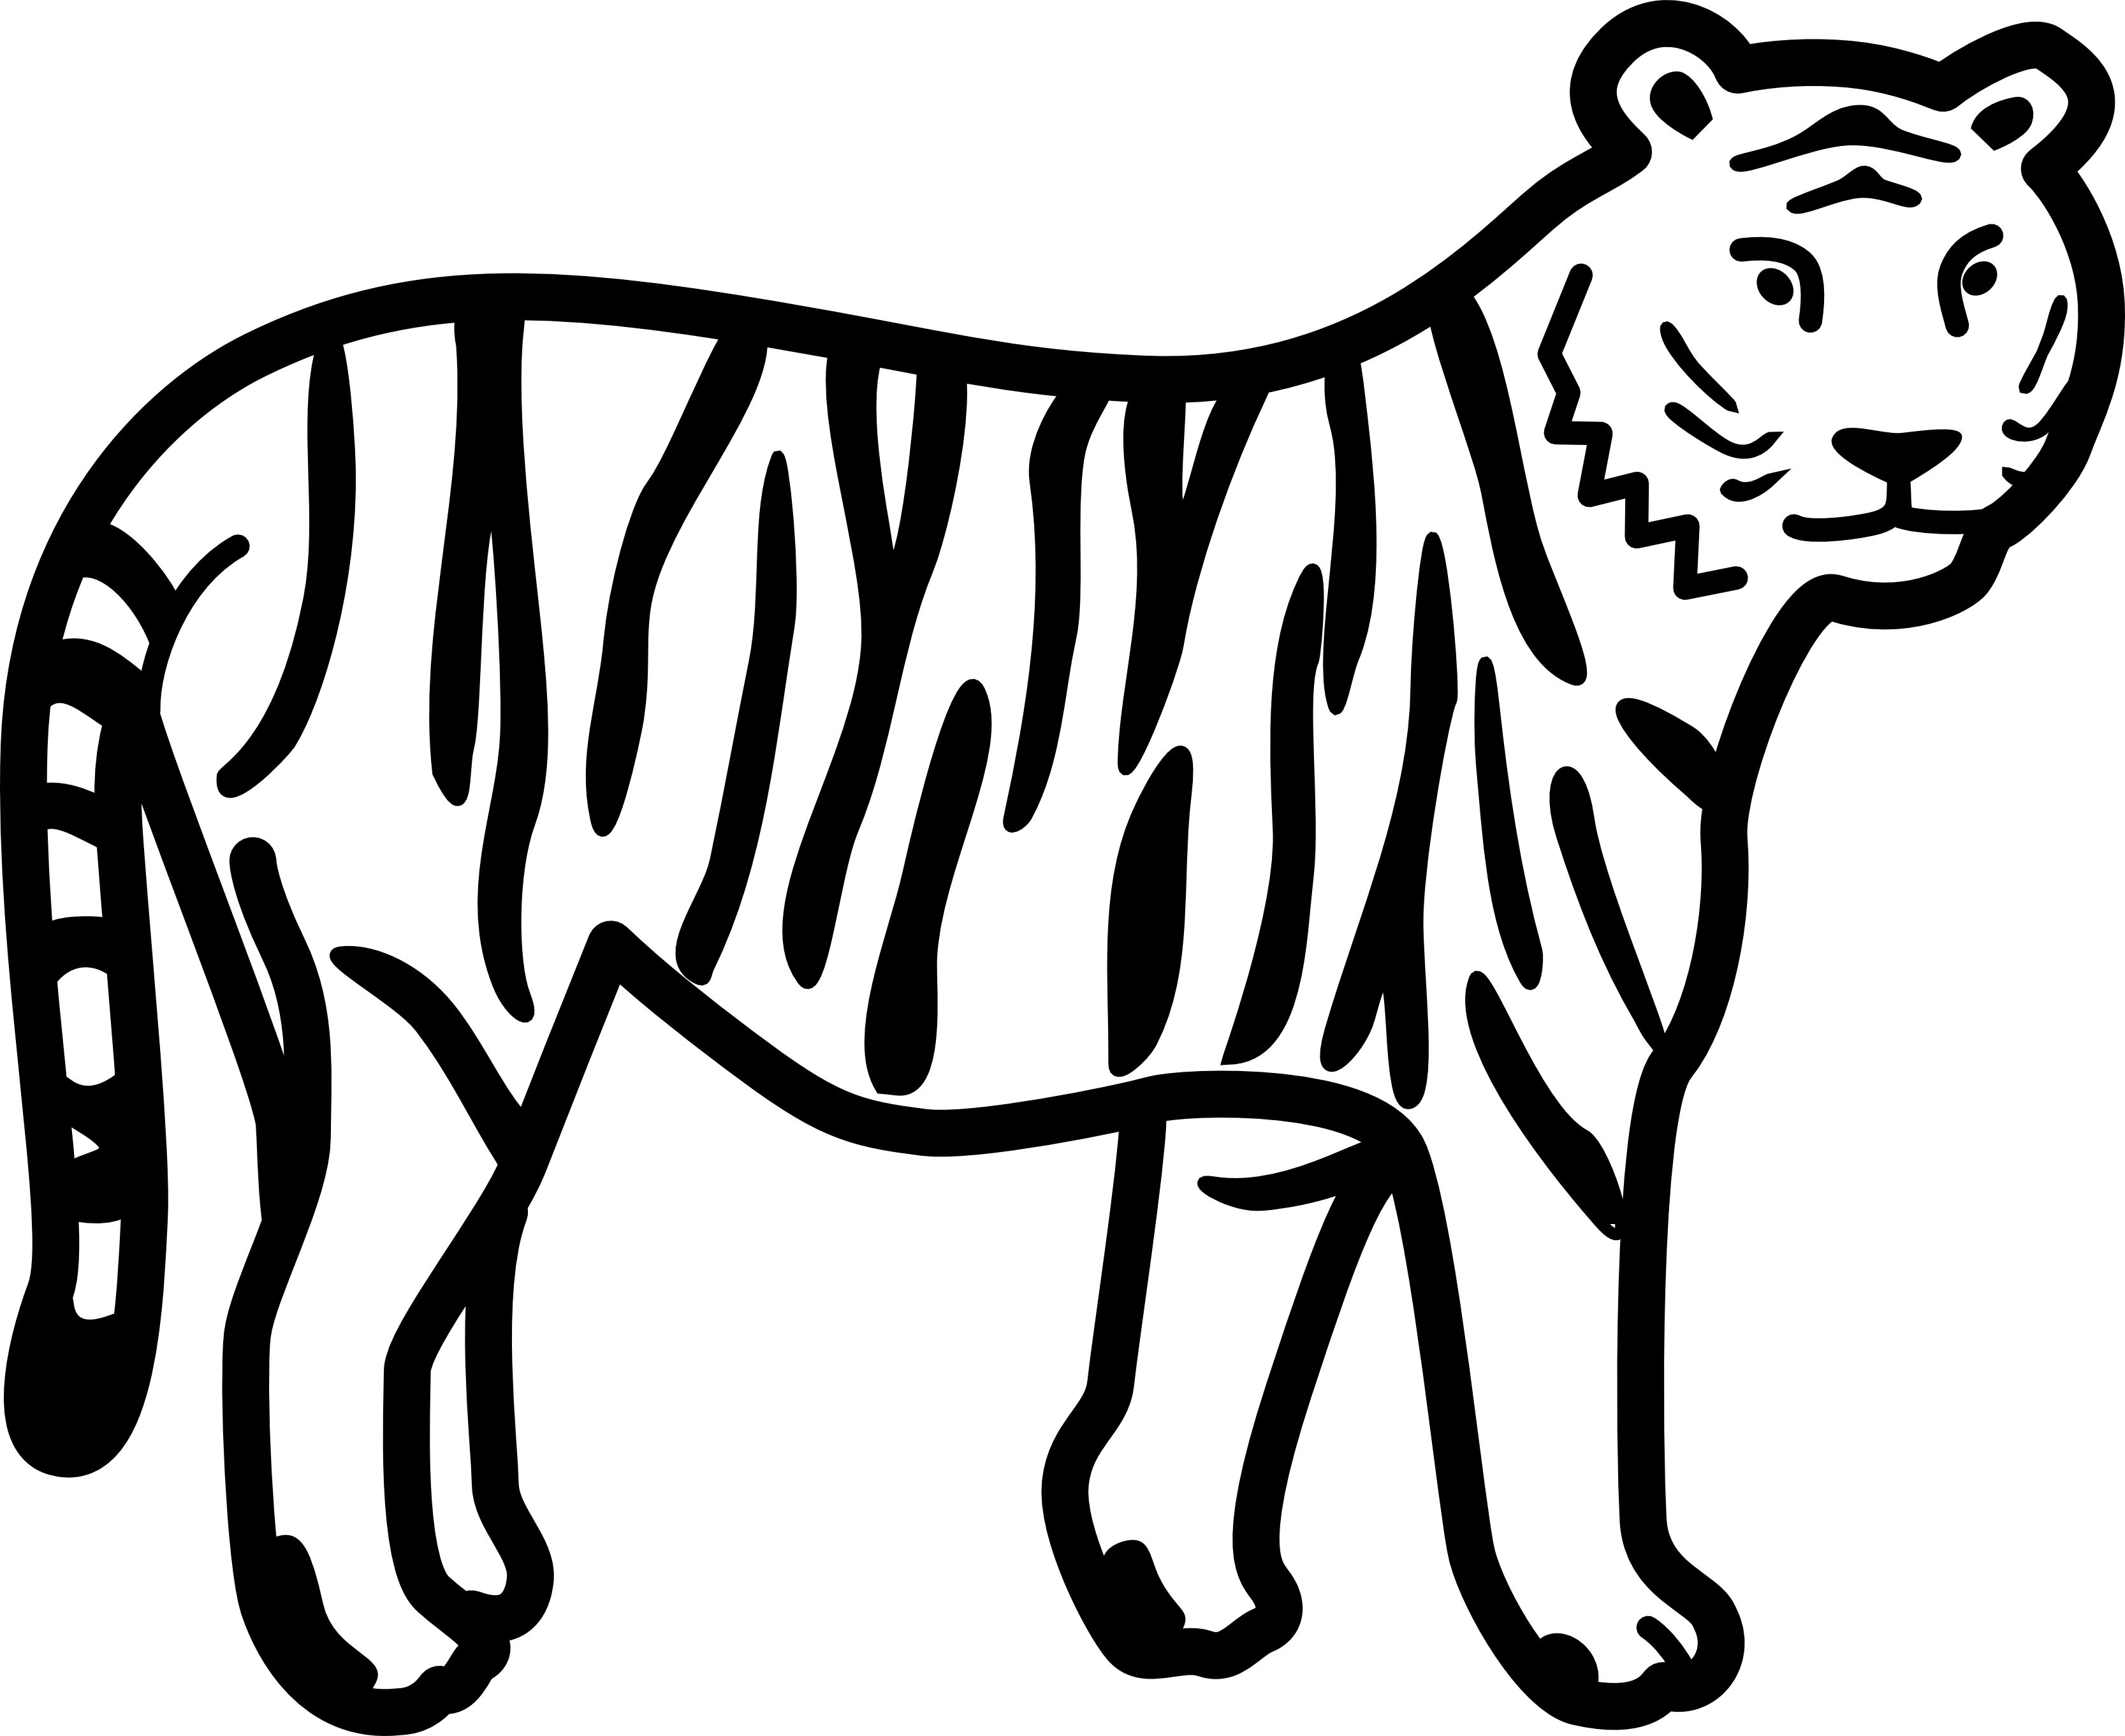 Tiger  black and white tiger face clip art black and white free clipart 2